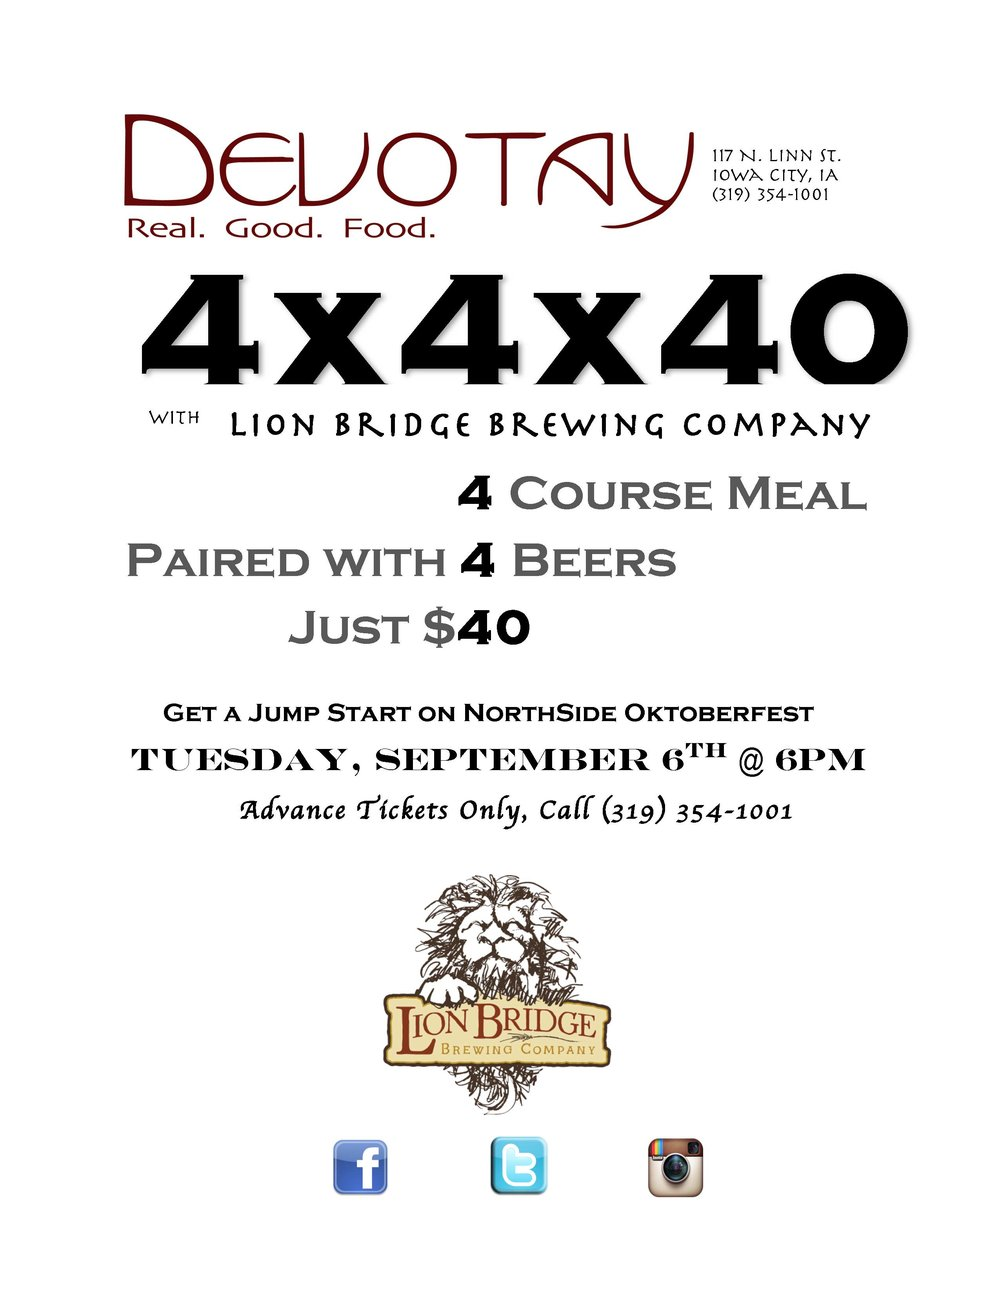 RESERVATIONS ARE REQUIRED. THESE EVENTS SELL OUT FAST SO CALL 319.354.1001 TO RESERVE YOUR SEAT TODAY! Join us for the next in our 4x4x40 series. This dinner will feature 4 beers from Lion Bridge Brewing Co. paired with 4 dishes created by Devotay Executive Chef Daniel Knowles, all for just $40